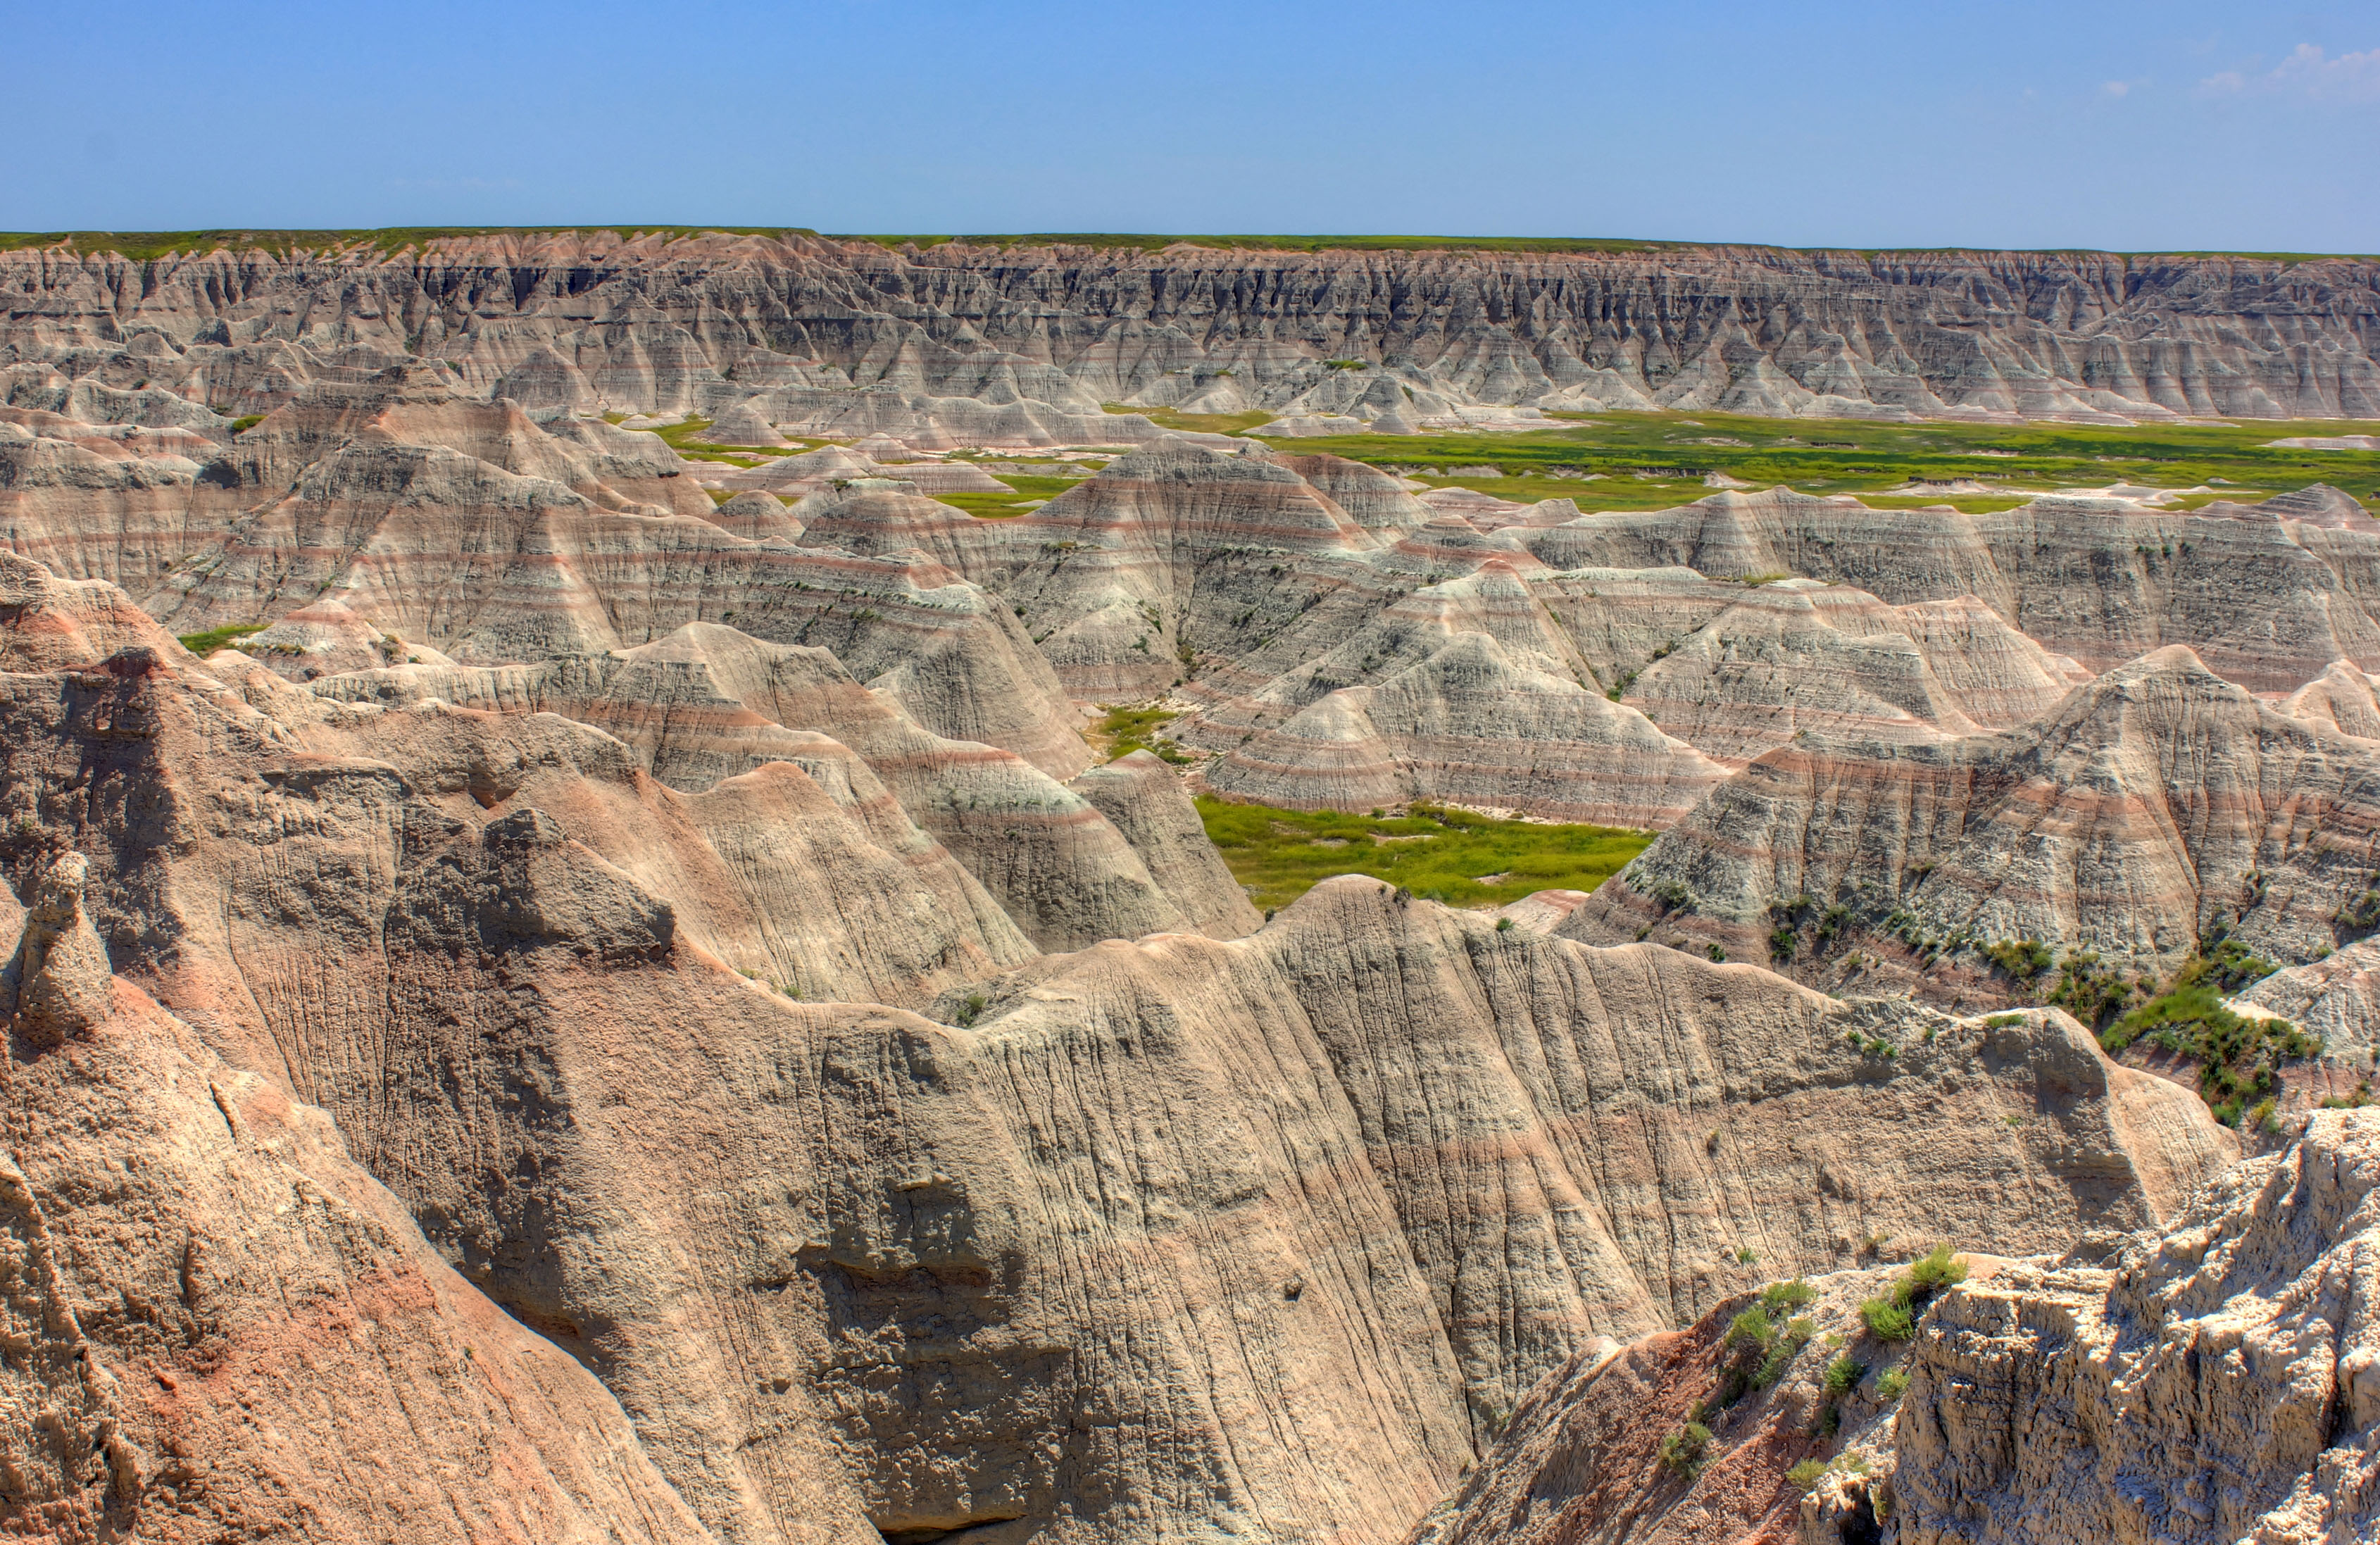 Closer Up of Badlands Formations